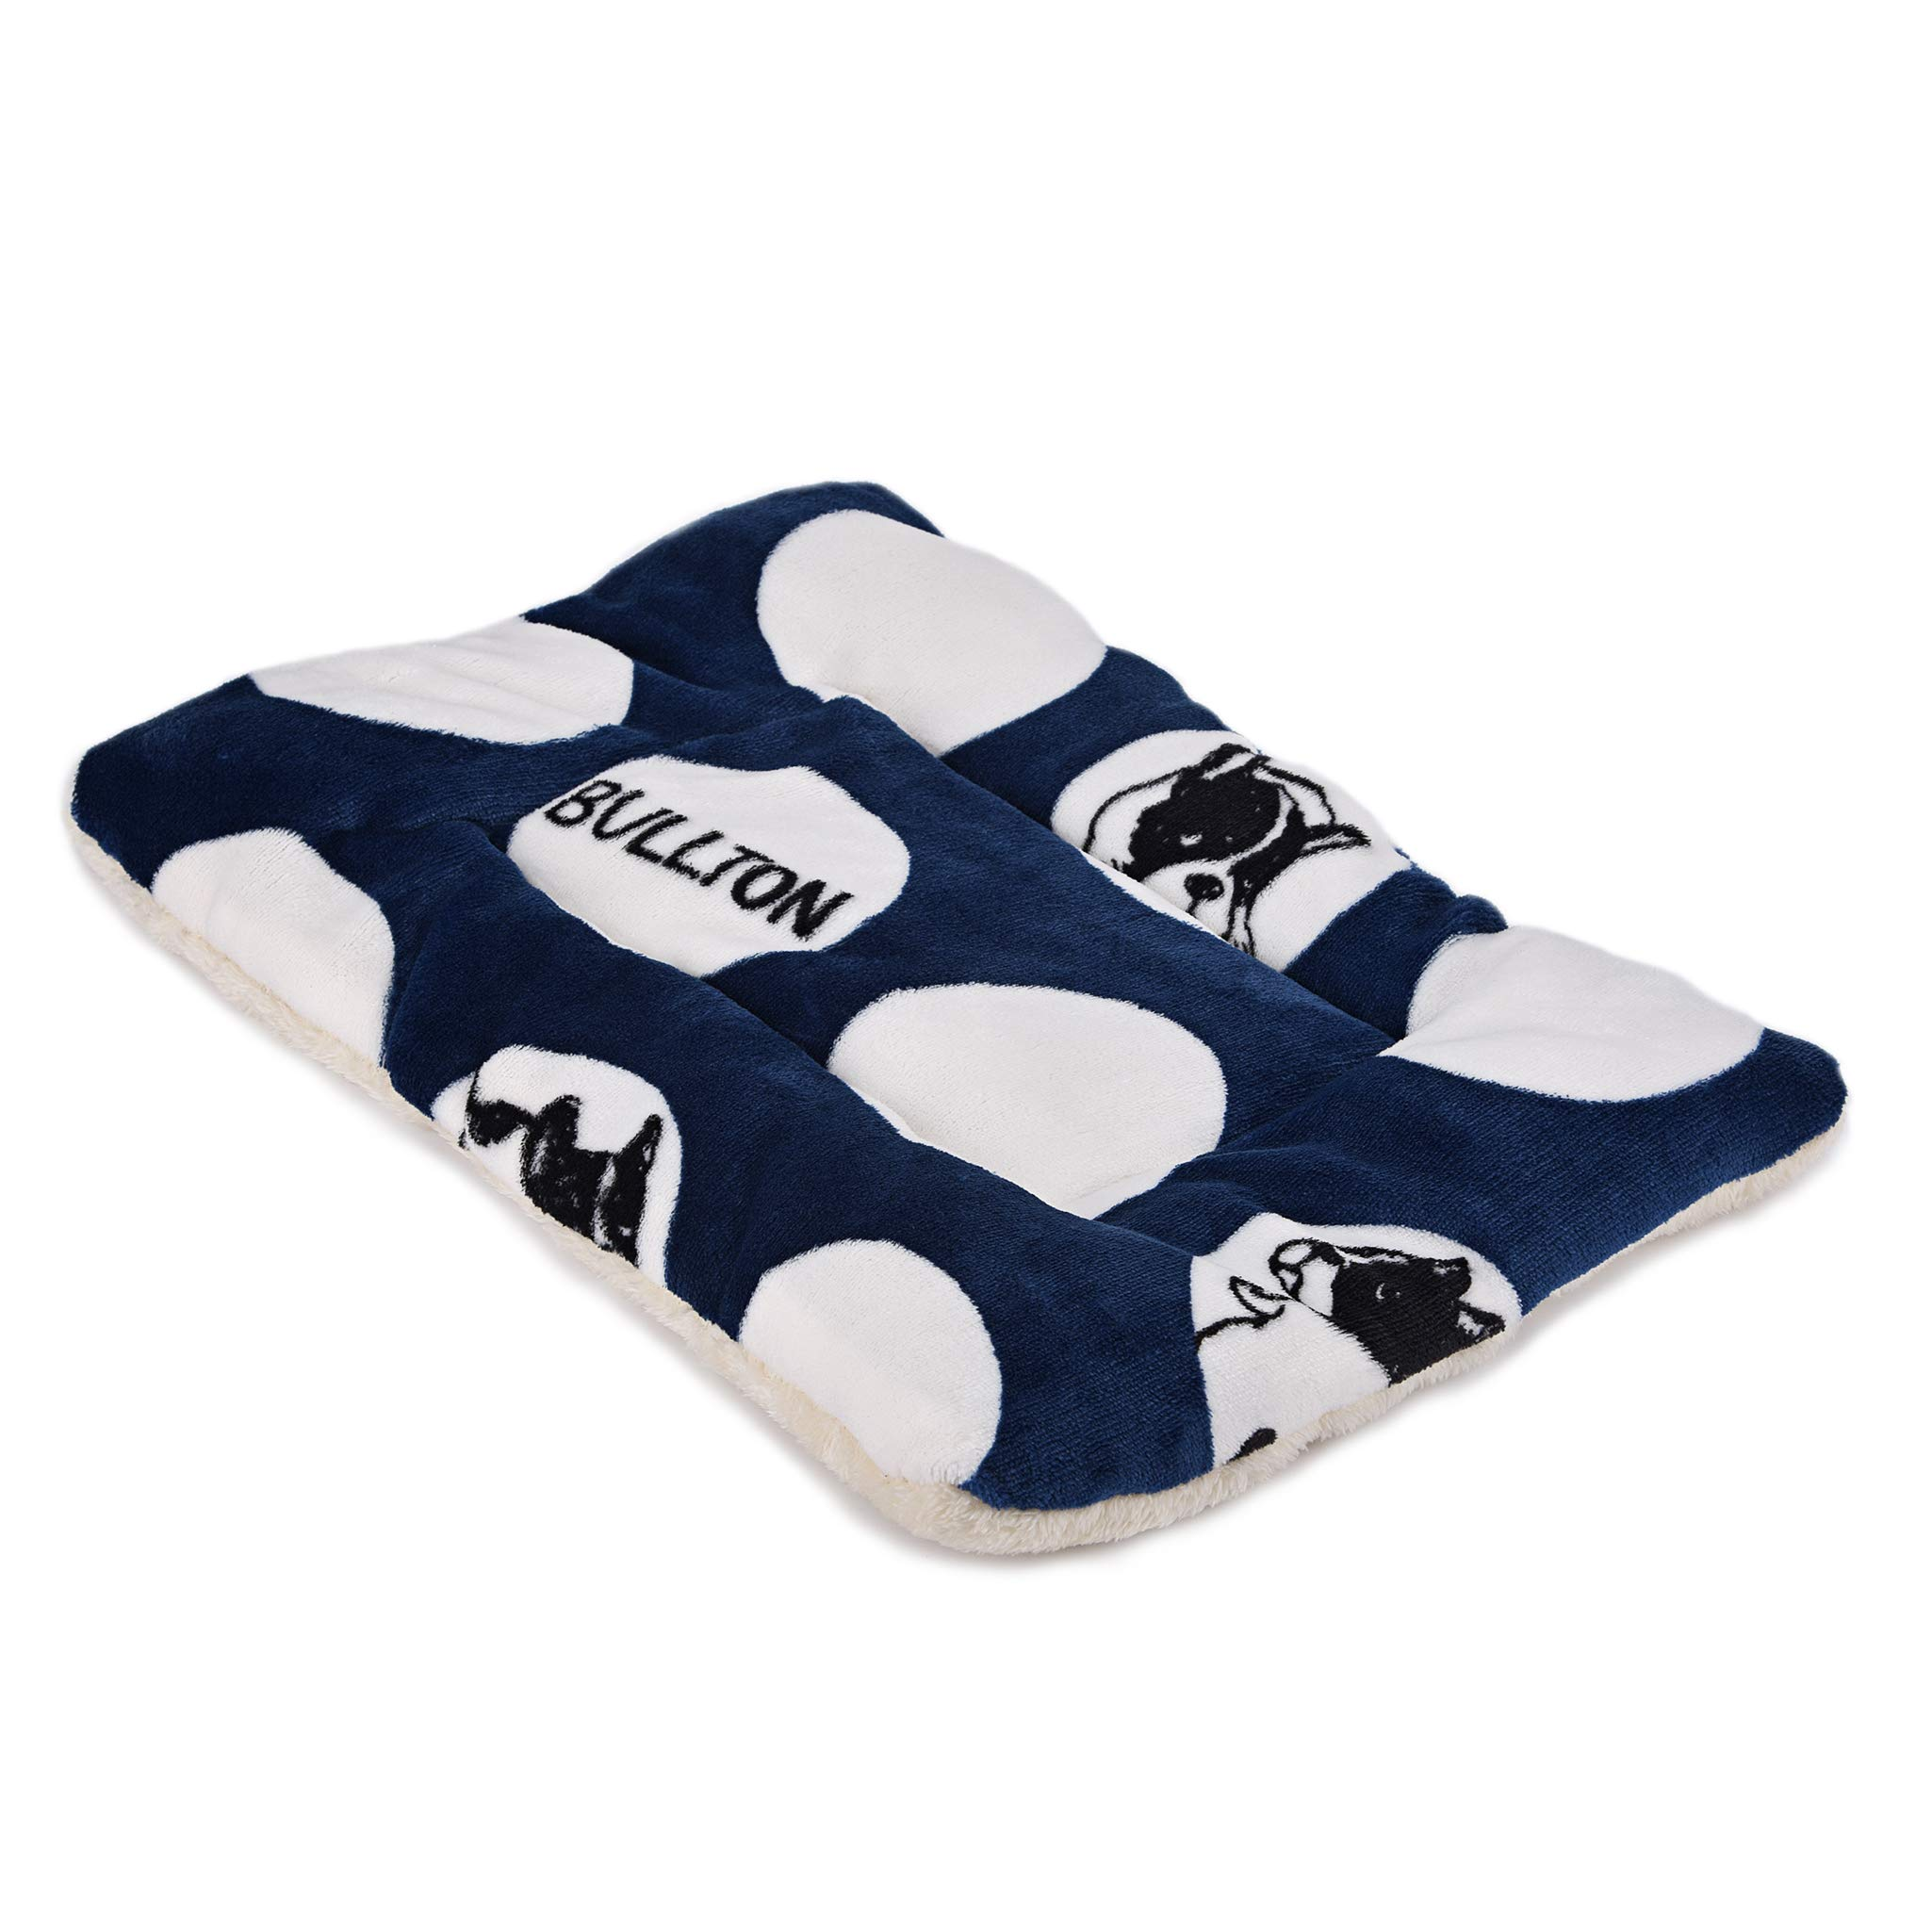 SEKAYISORE Double-Sided Flannel Pet Sleep Mat, Super Soft Dog and Cat Bed Mat with Three-Dimensional Prints, Machine Washable Dog Crate Kennel Pad, Dark Blue XL